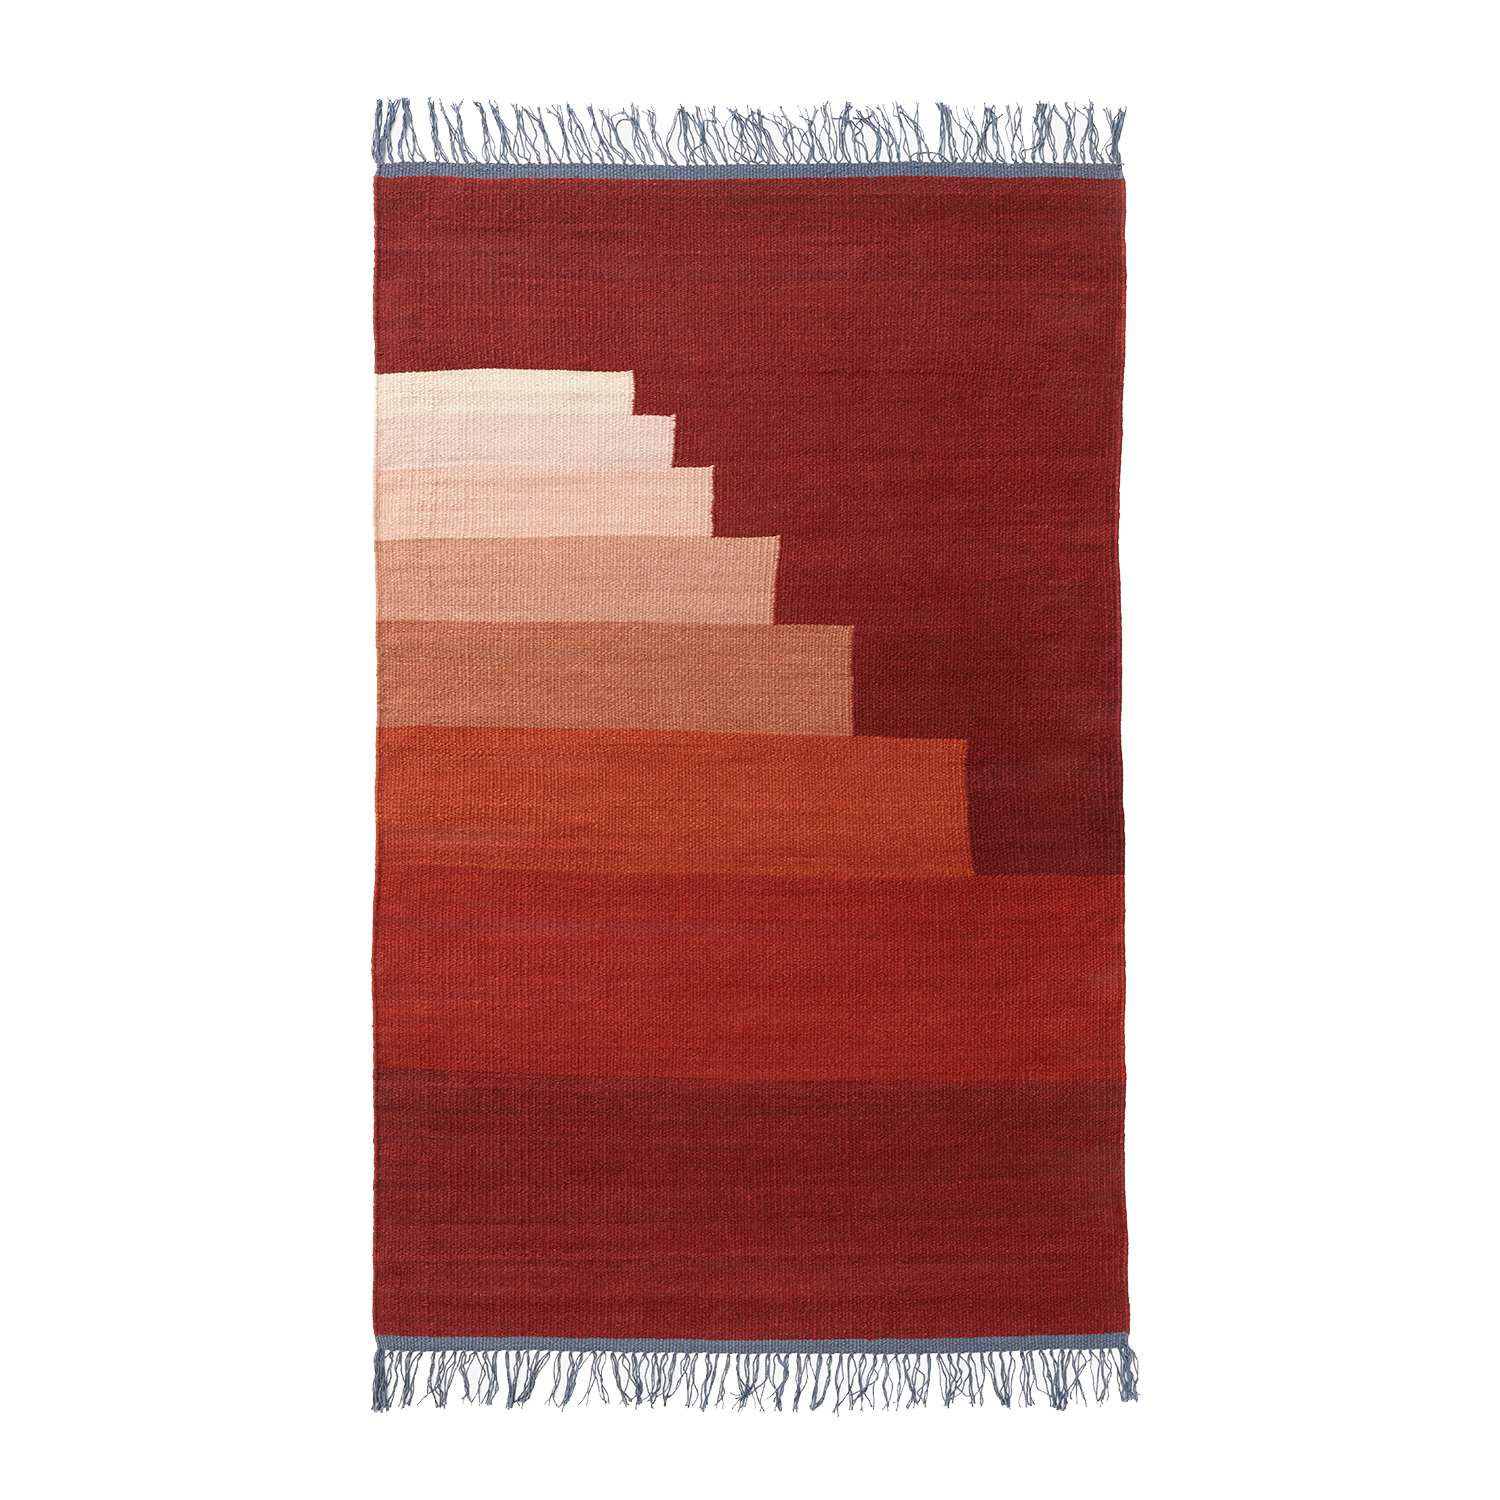 Bilde av &Tradition-Another Rug Ap1, Red Volcano